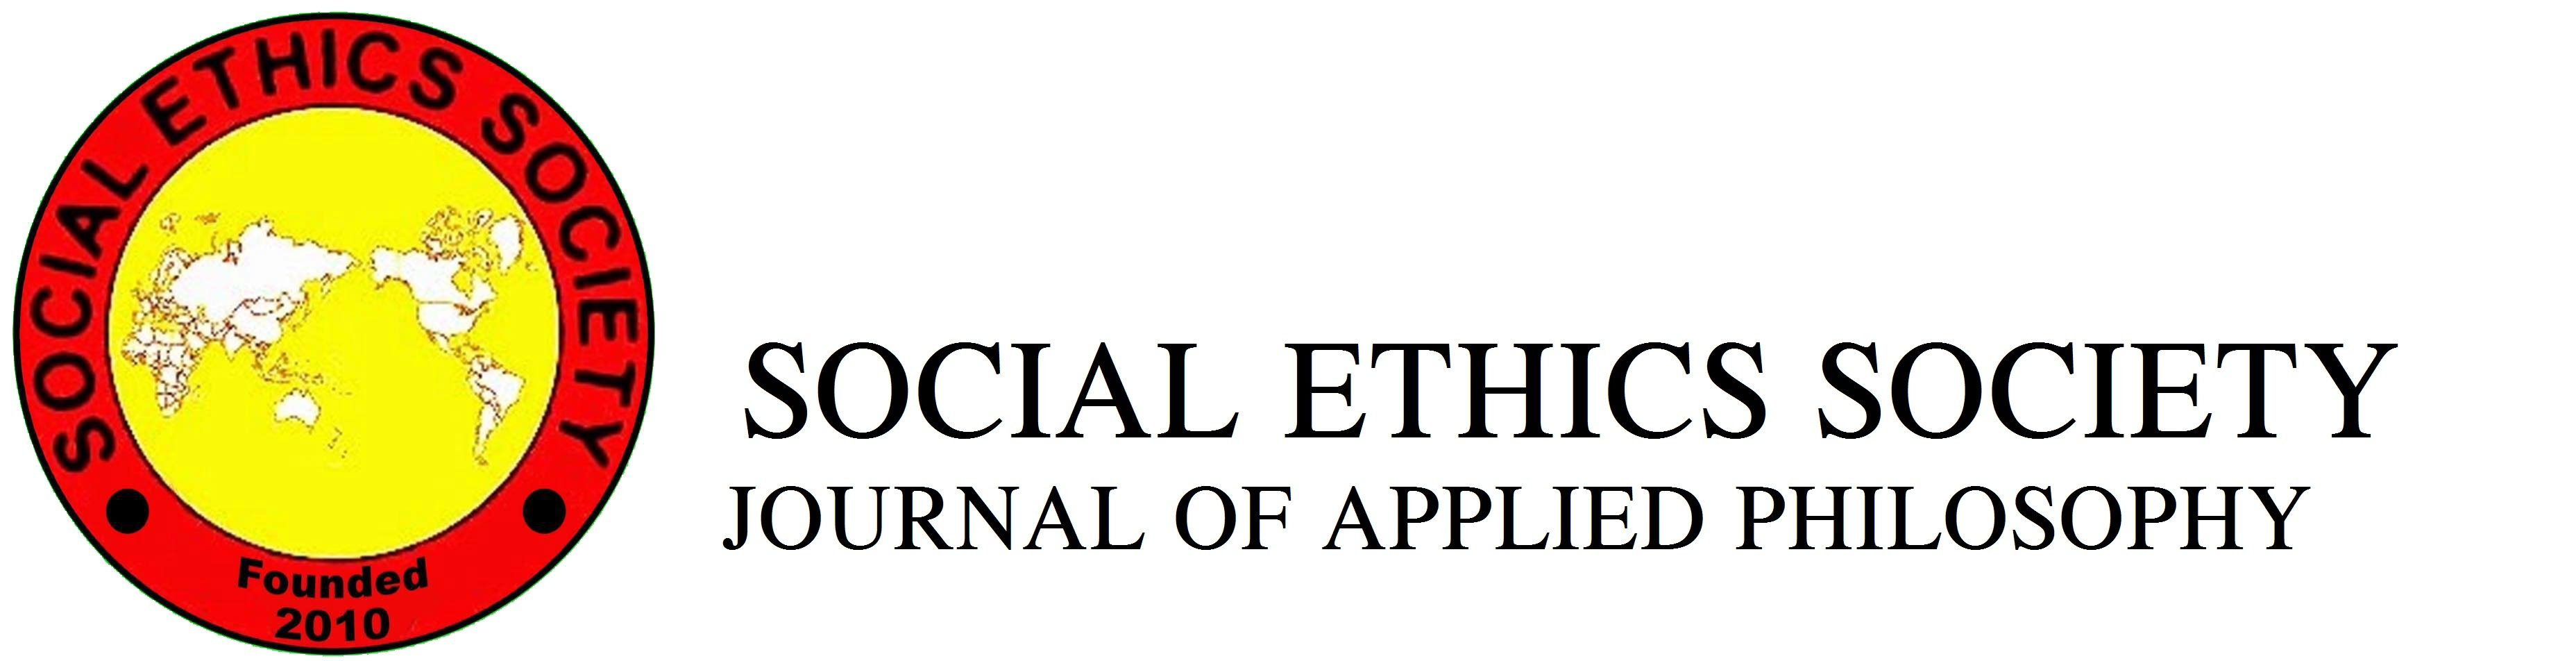 SOCIAL ETHICS SOCIETY